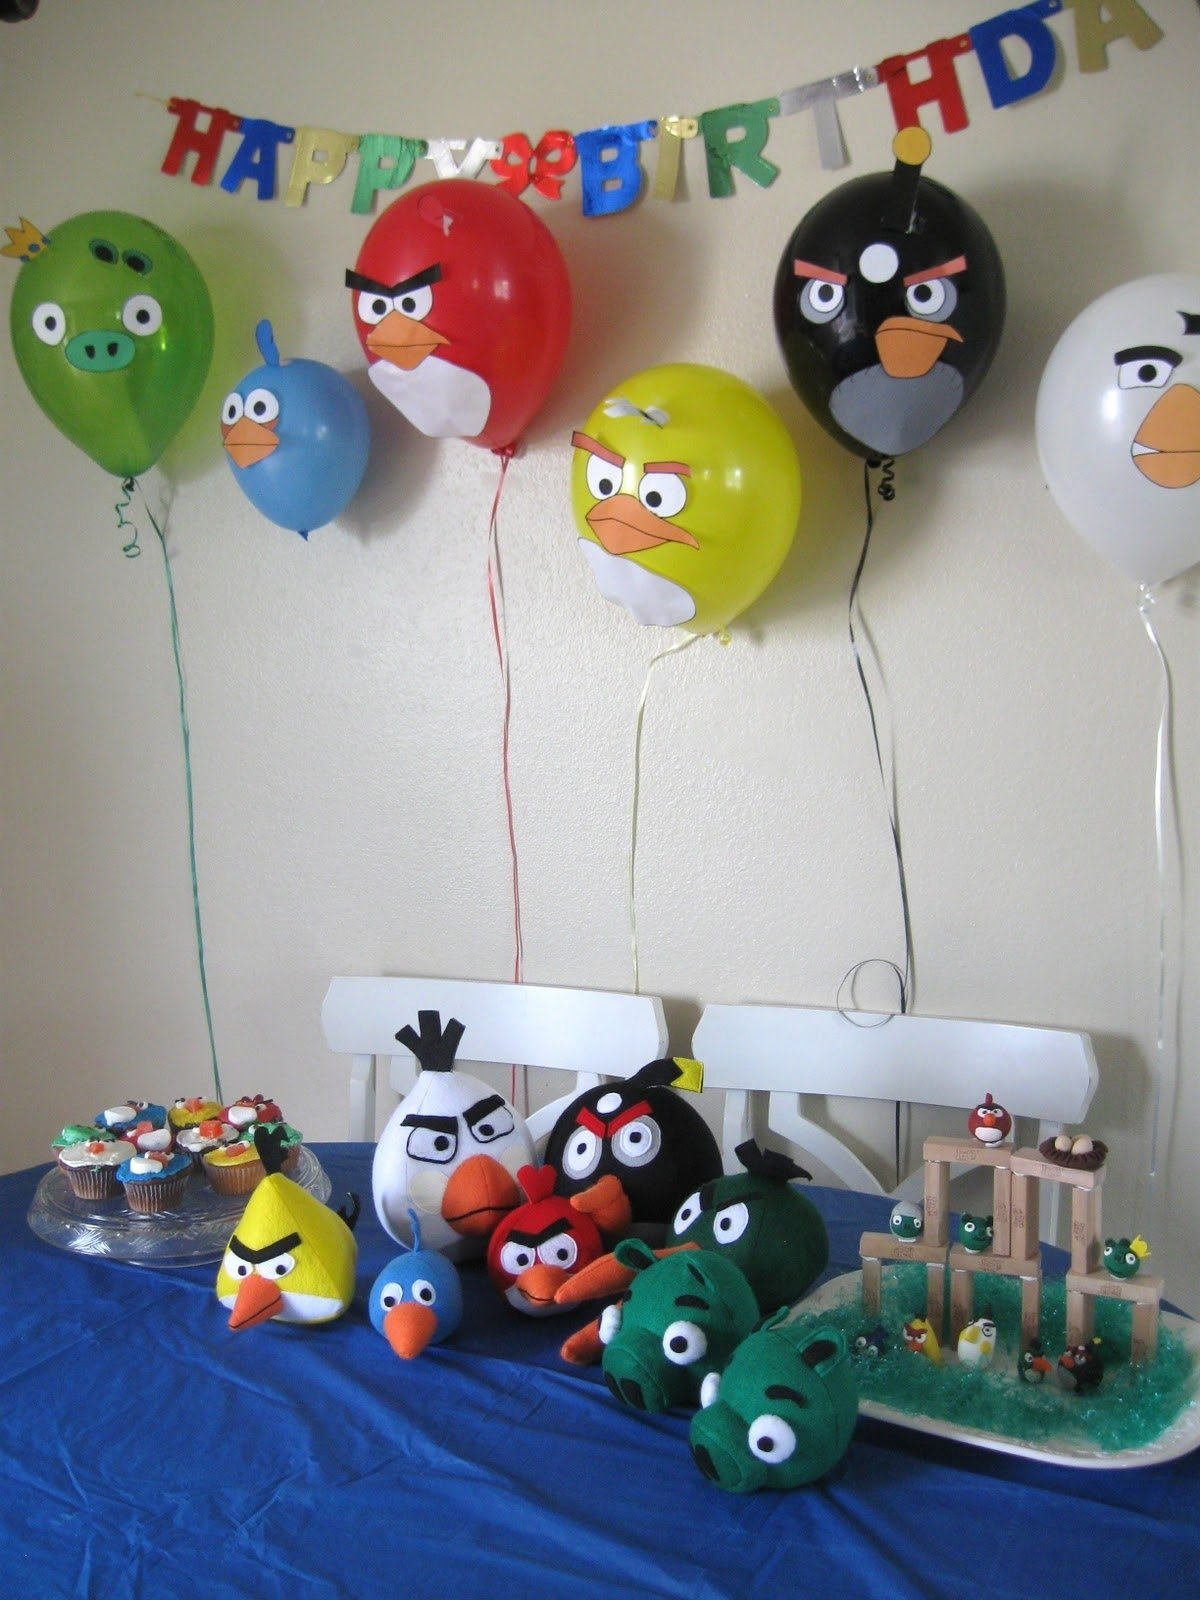 10 Most Recommended Birthday Party Ideas For 2 Year Old Boy angry birds balloons jacks next birthday party idea ideas for 8